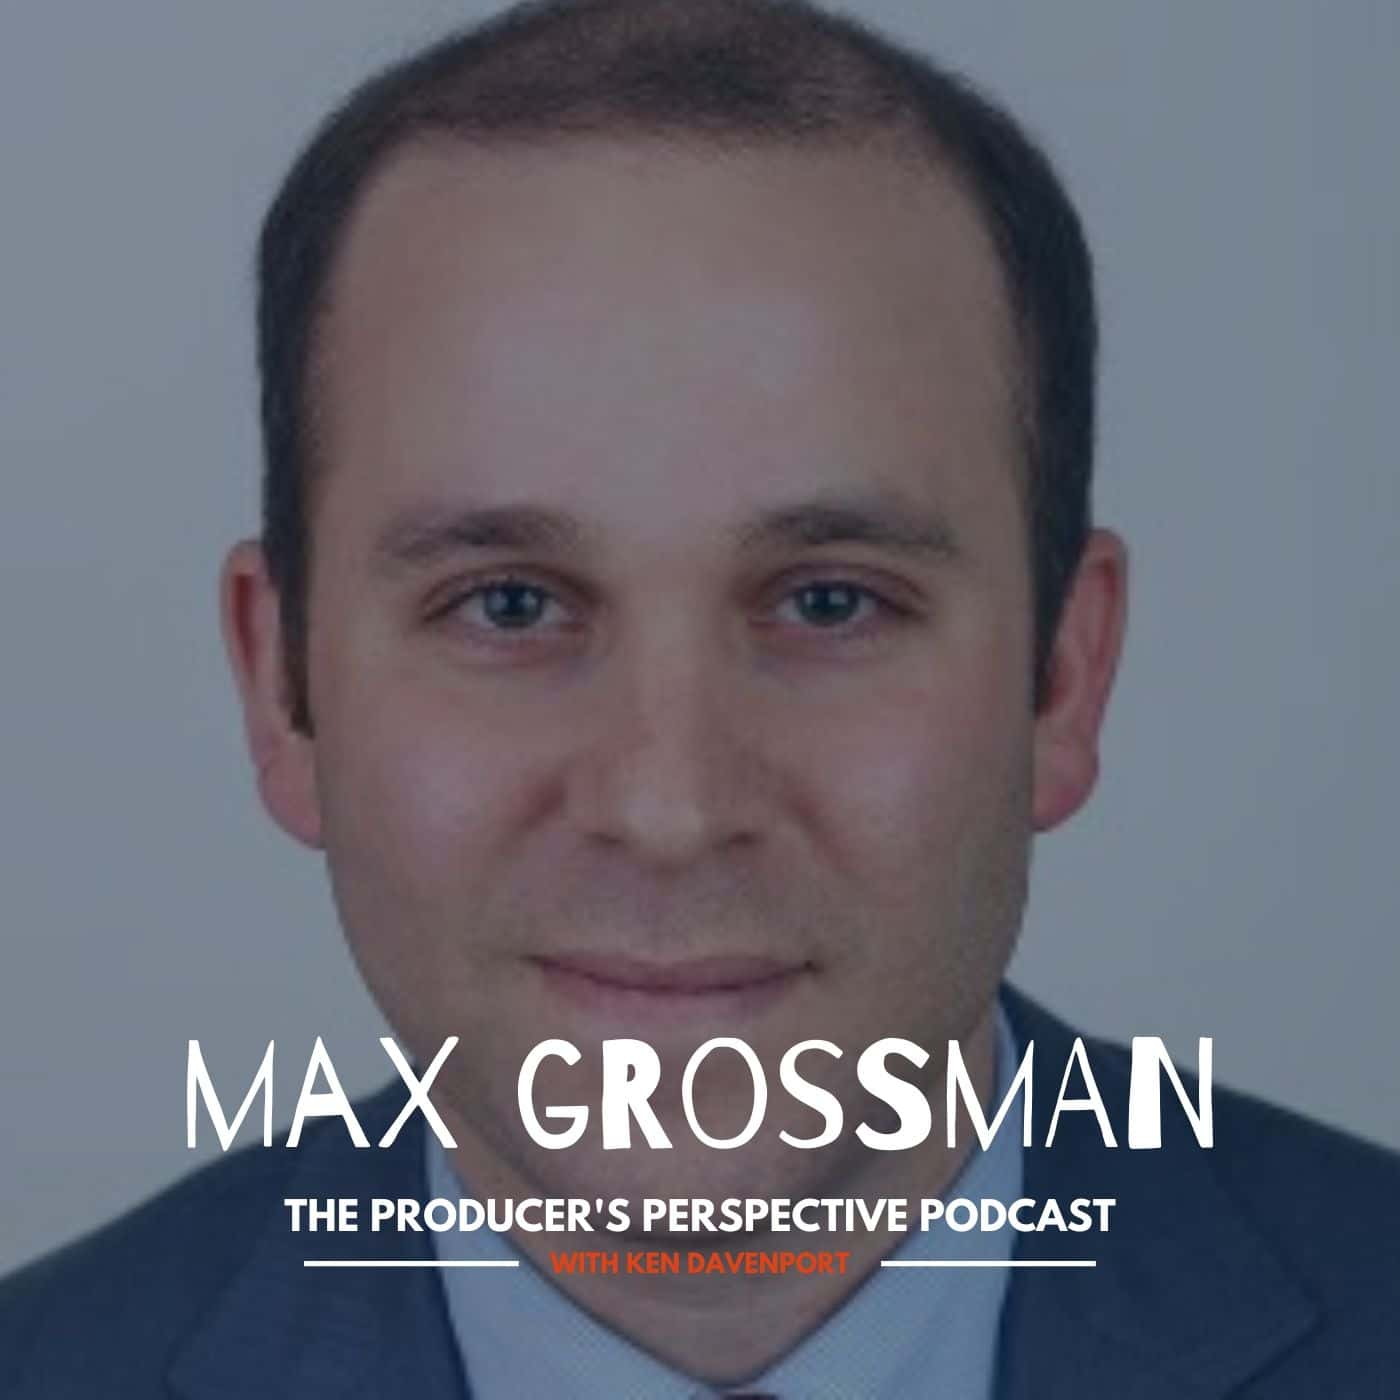 Ken Davenport's The Producer's Perspective Podcast Episode 170 - Max Grossman